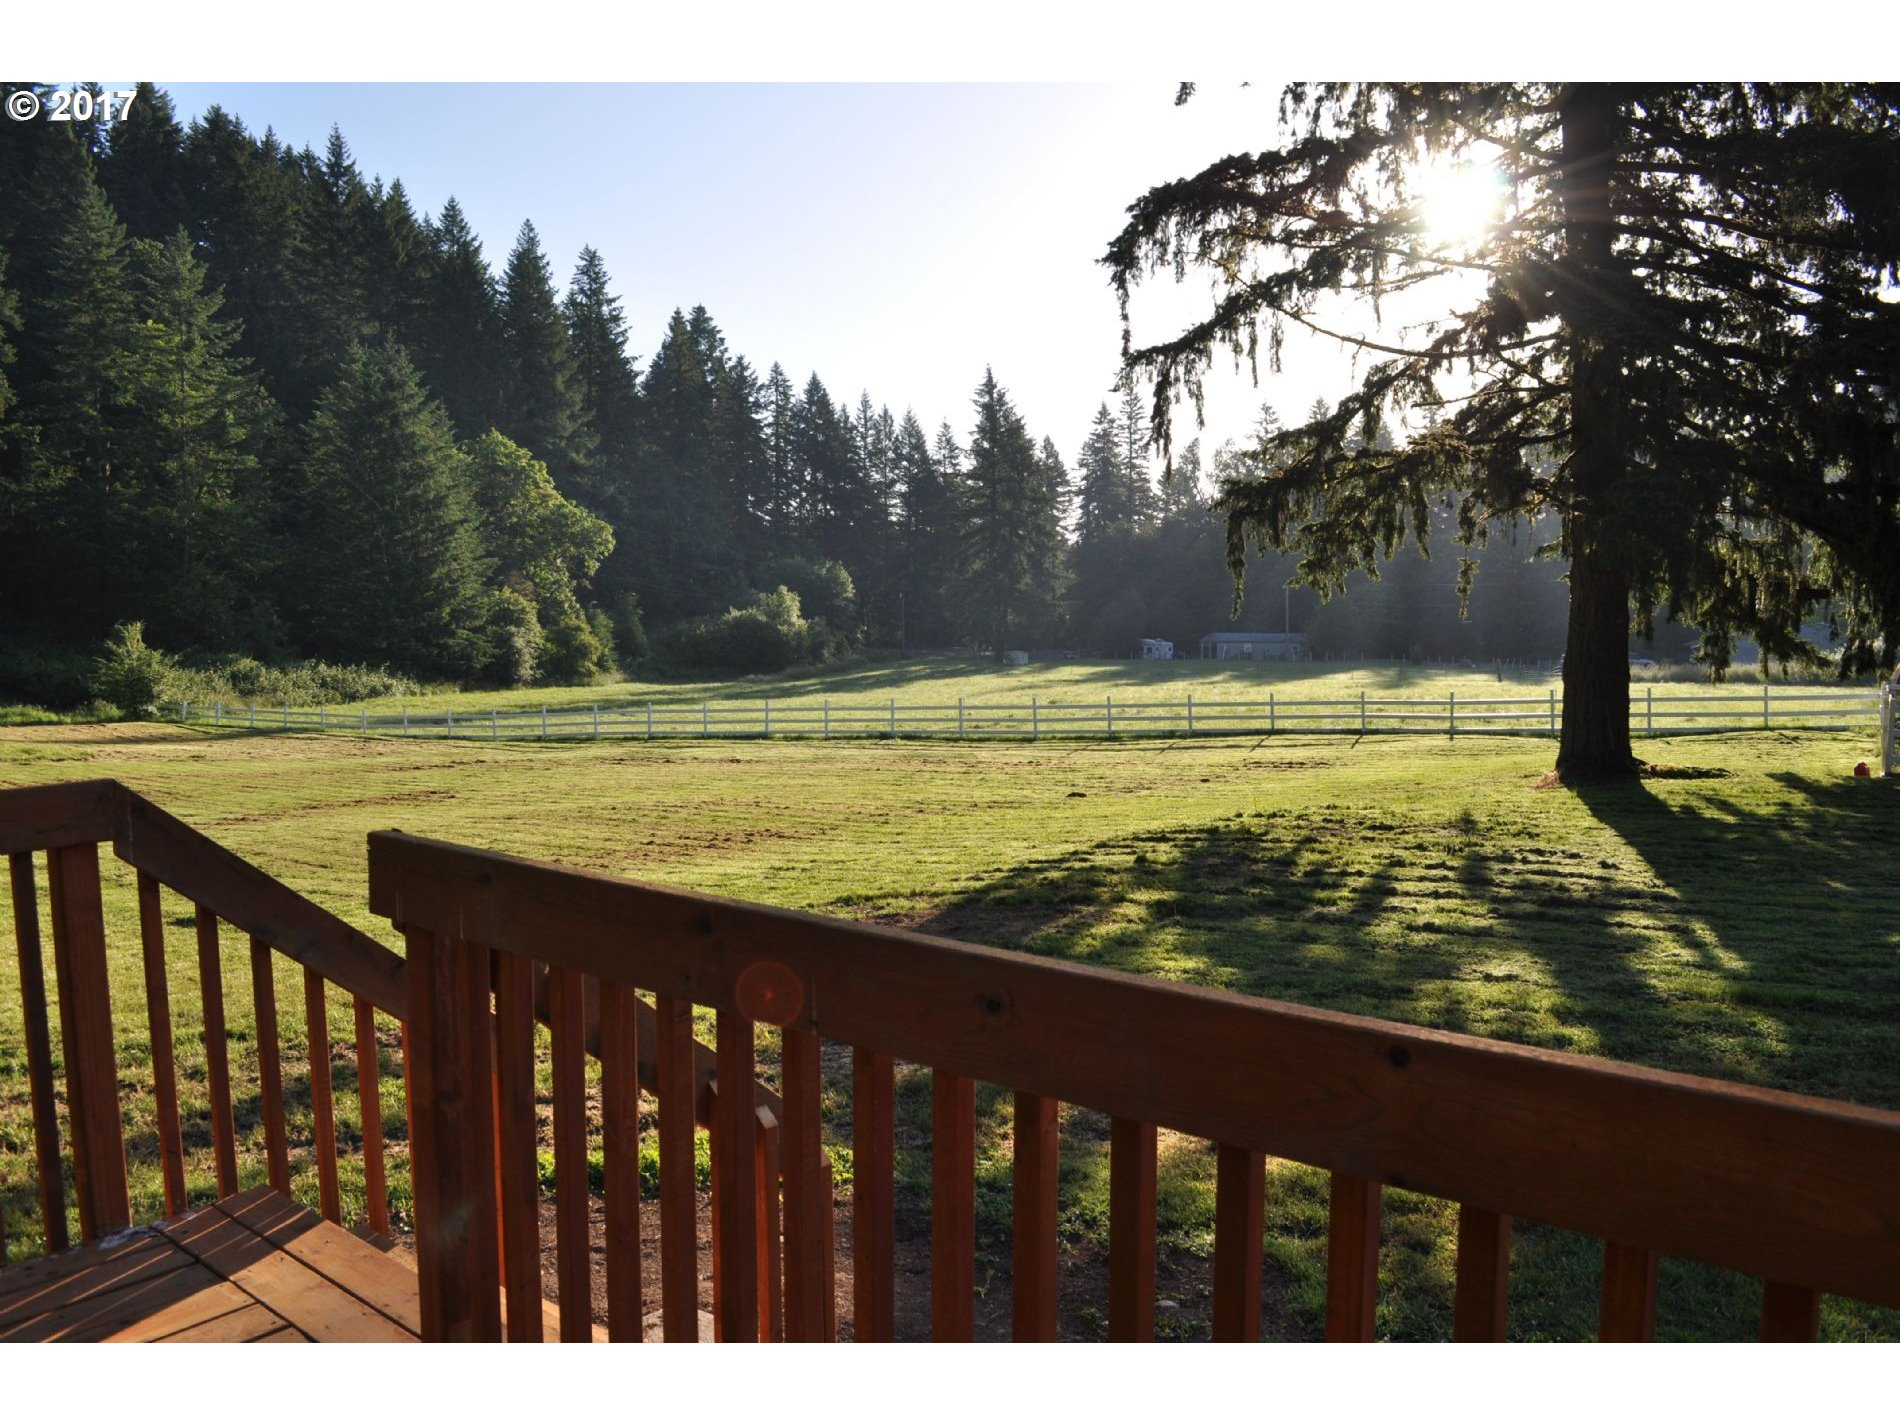 15120 S ROSENBAUM RD Oregon City, OR 97045 - MLS #: 17589224